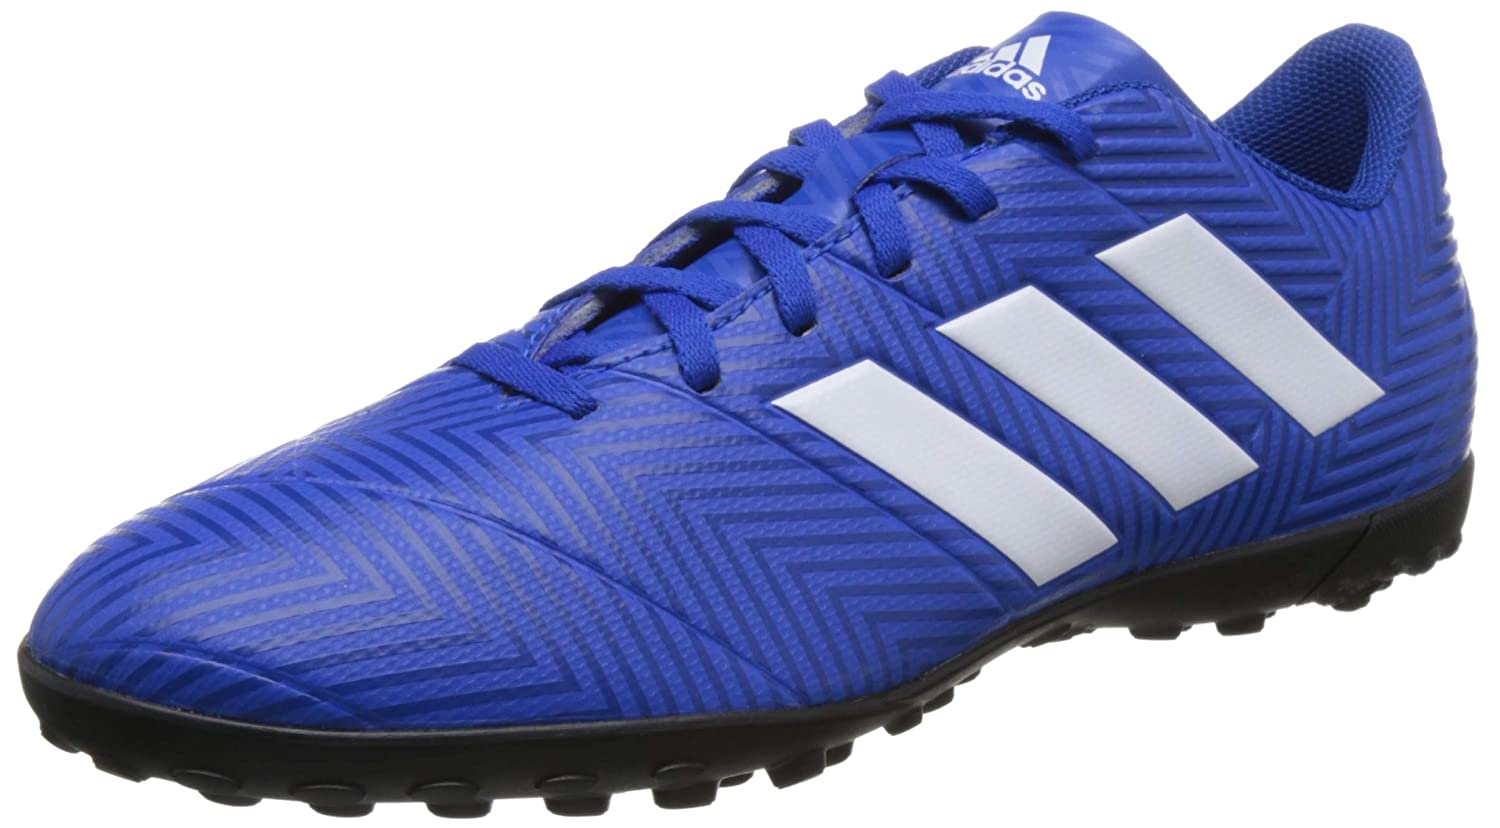 9d2dd7b46afe adidas Men s Nemeziz Tango 18.4 Tf Footbal Shoes  Amazon.co.uk  Shoes   Bags